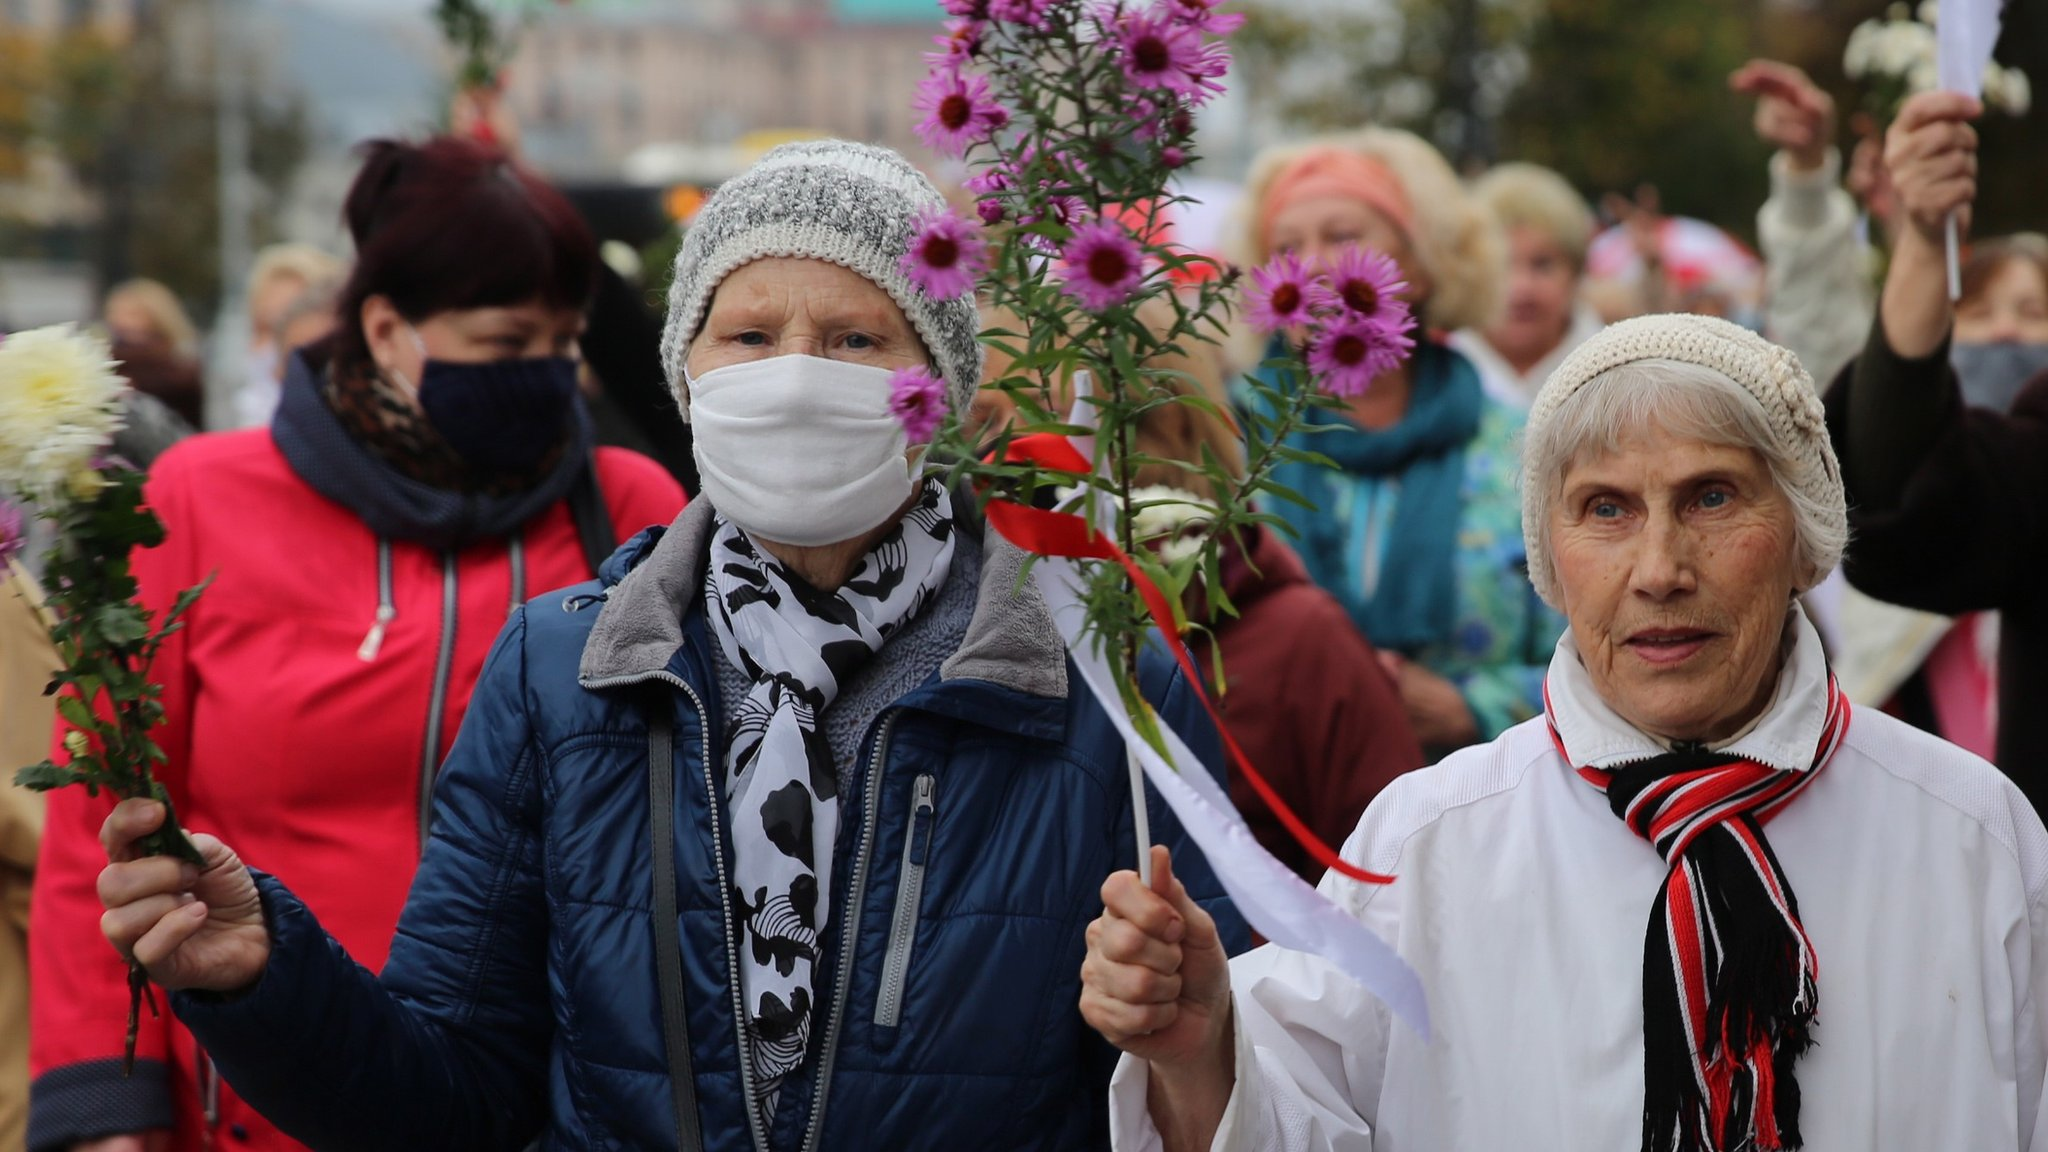 Belarus allows police to use lethal weapons at mass anti-government protests